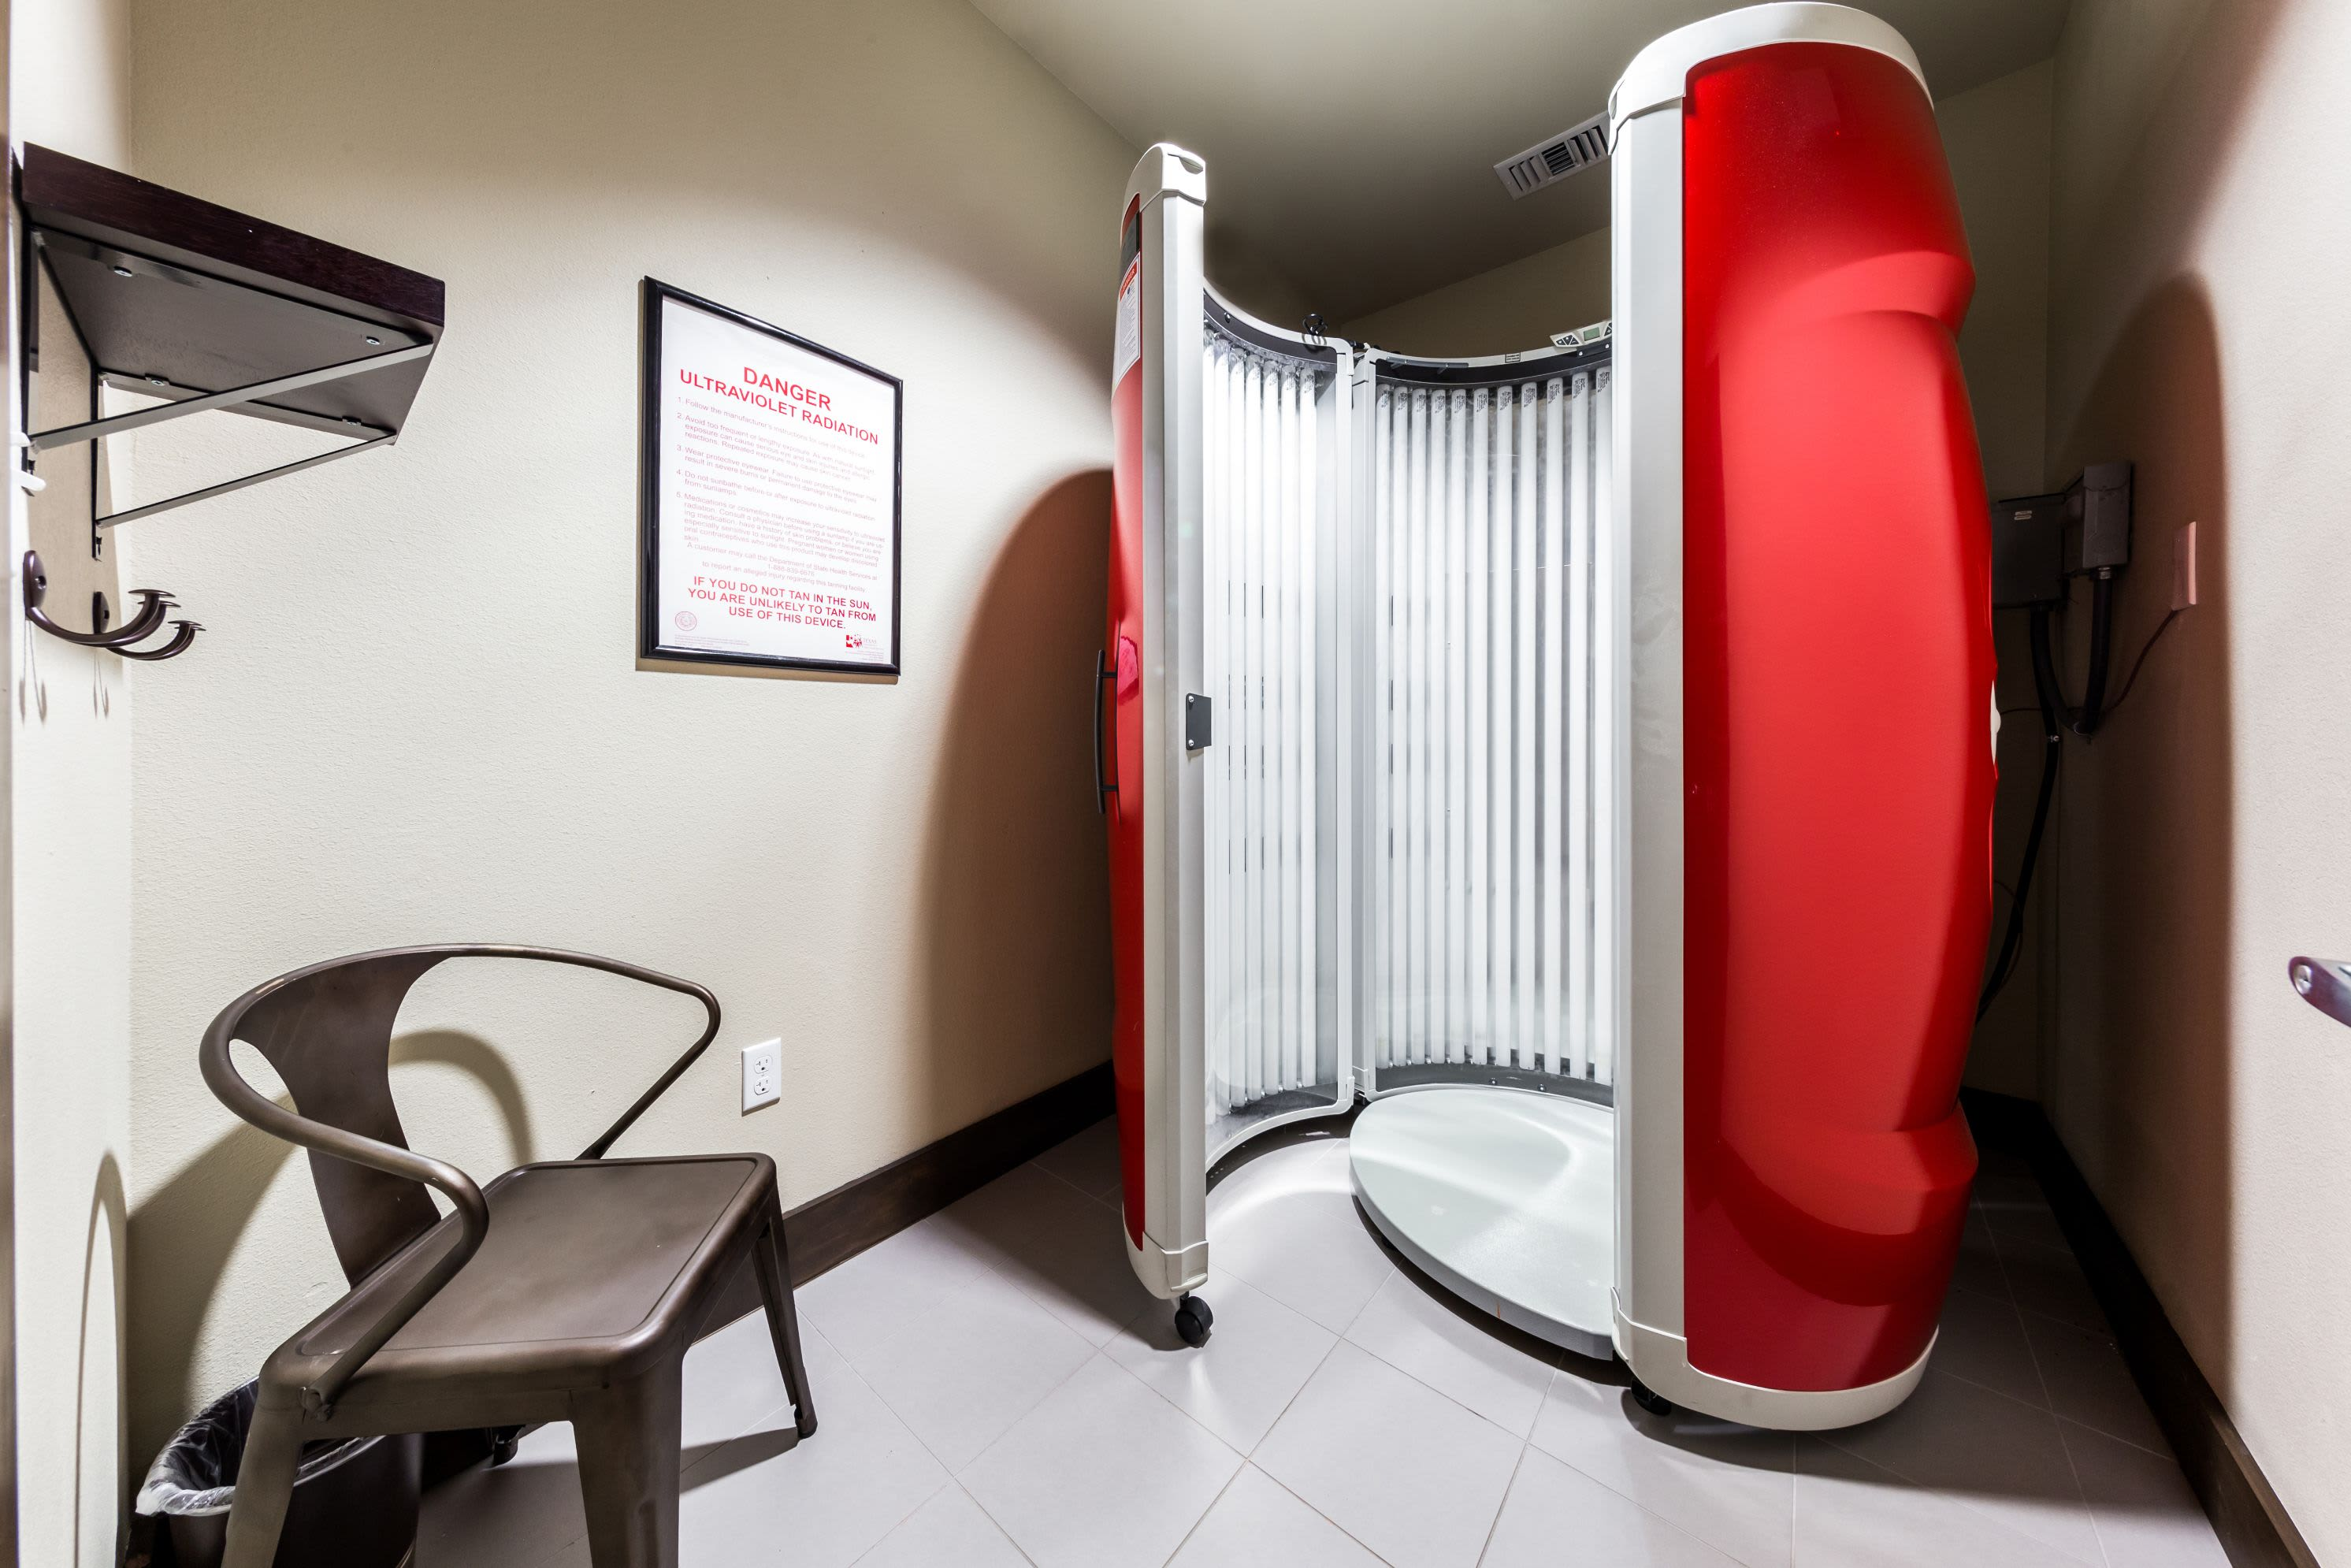 Tanning booth at Marquis on Lakeline in Cedar Park, Texas